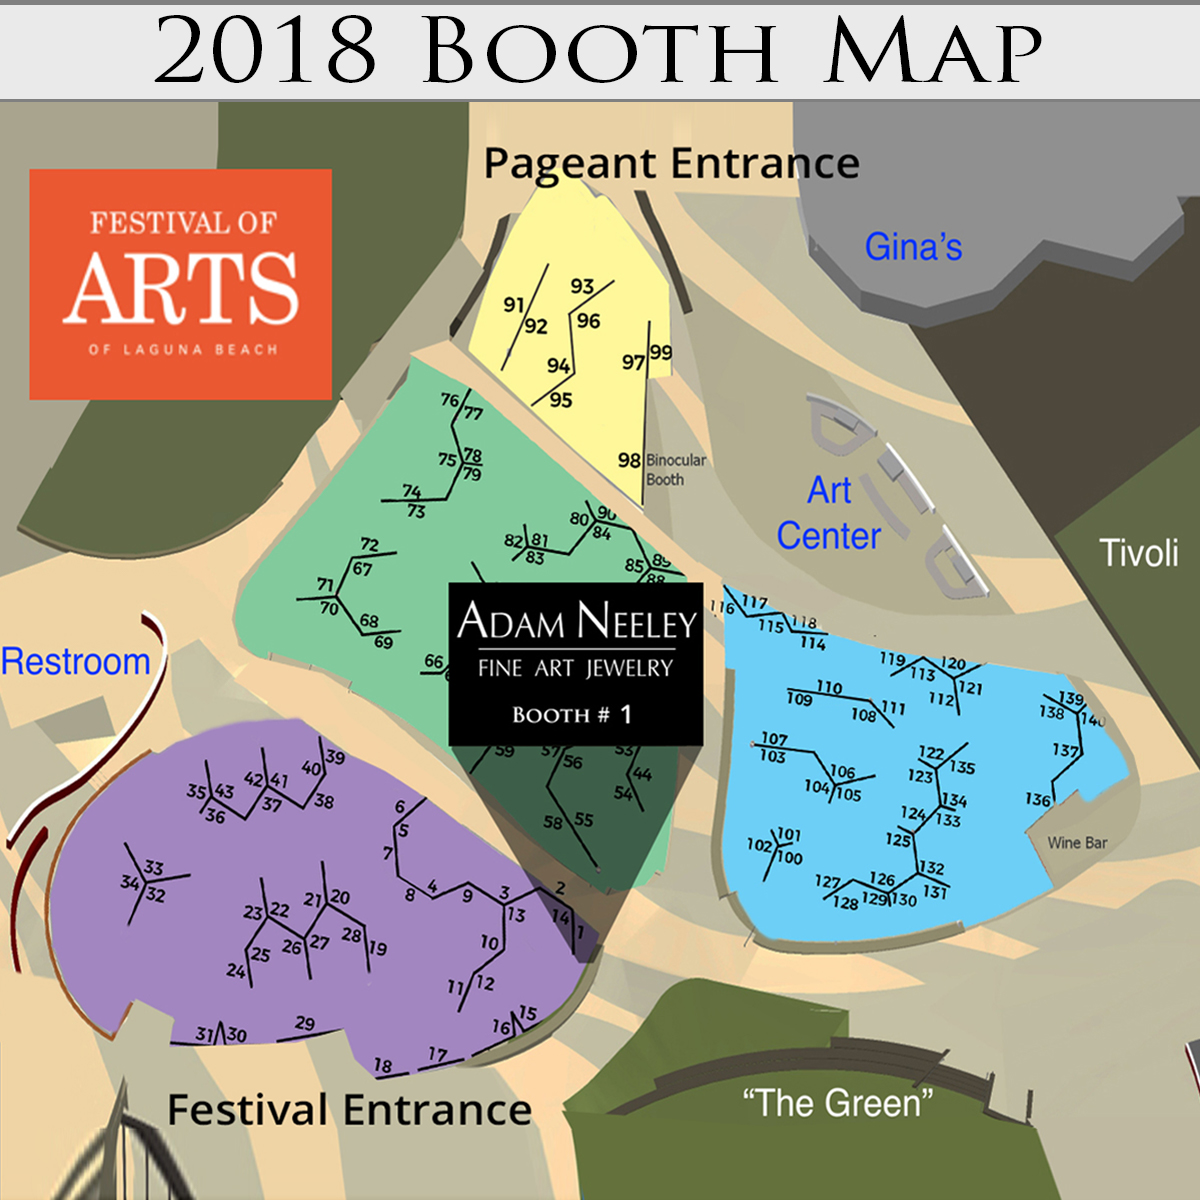 Festival of Arts Booth map